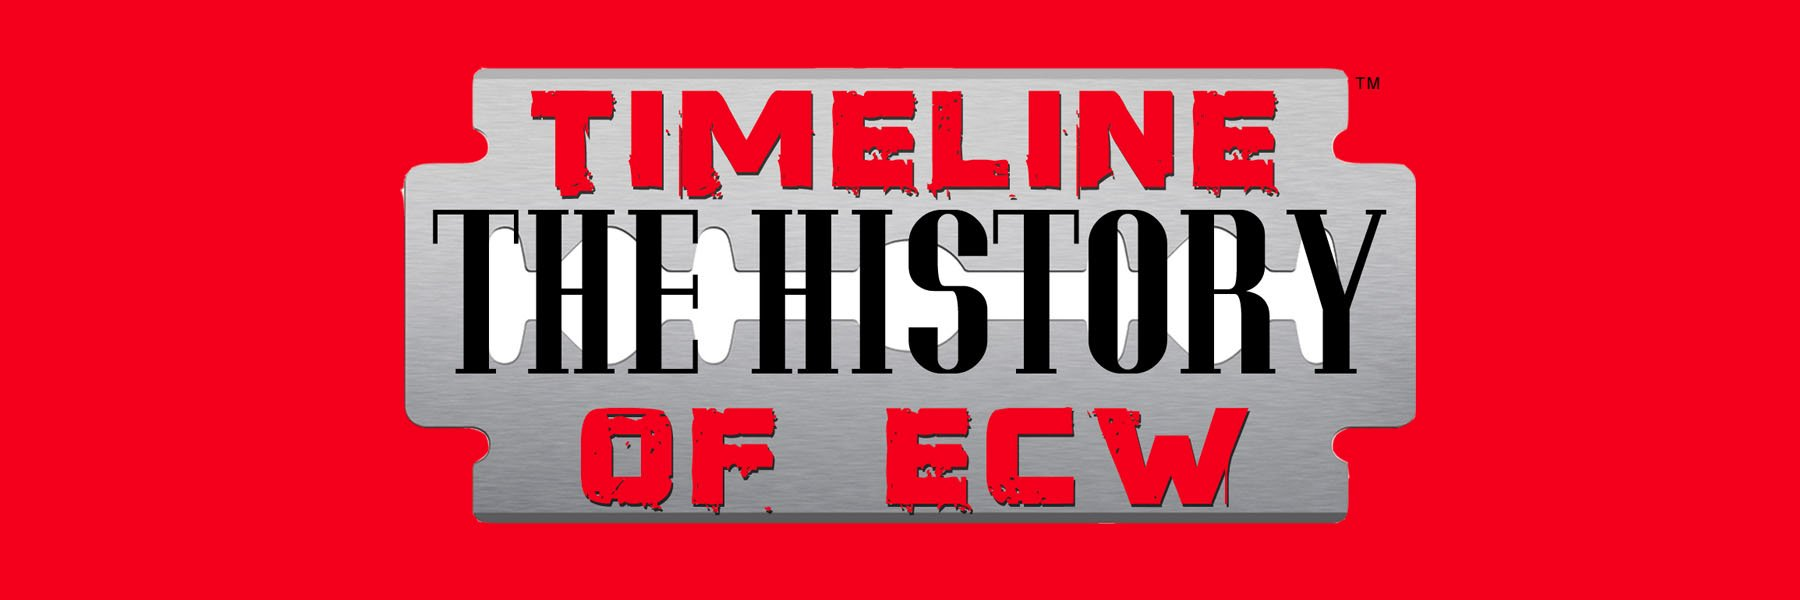 Timeline: The History of ECW